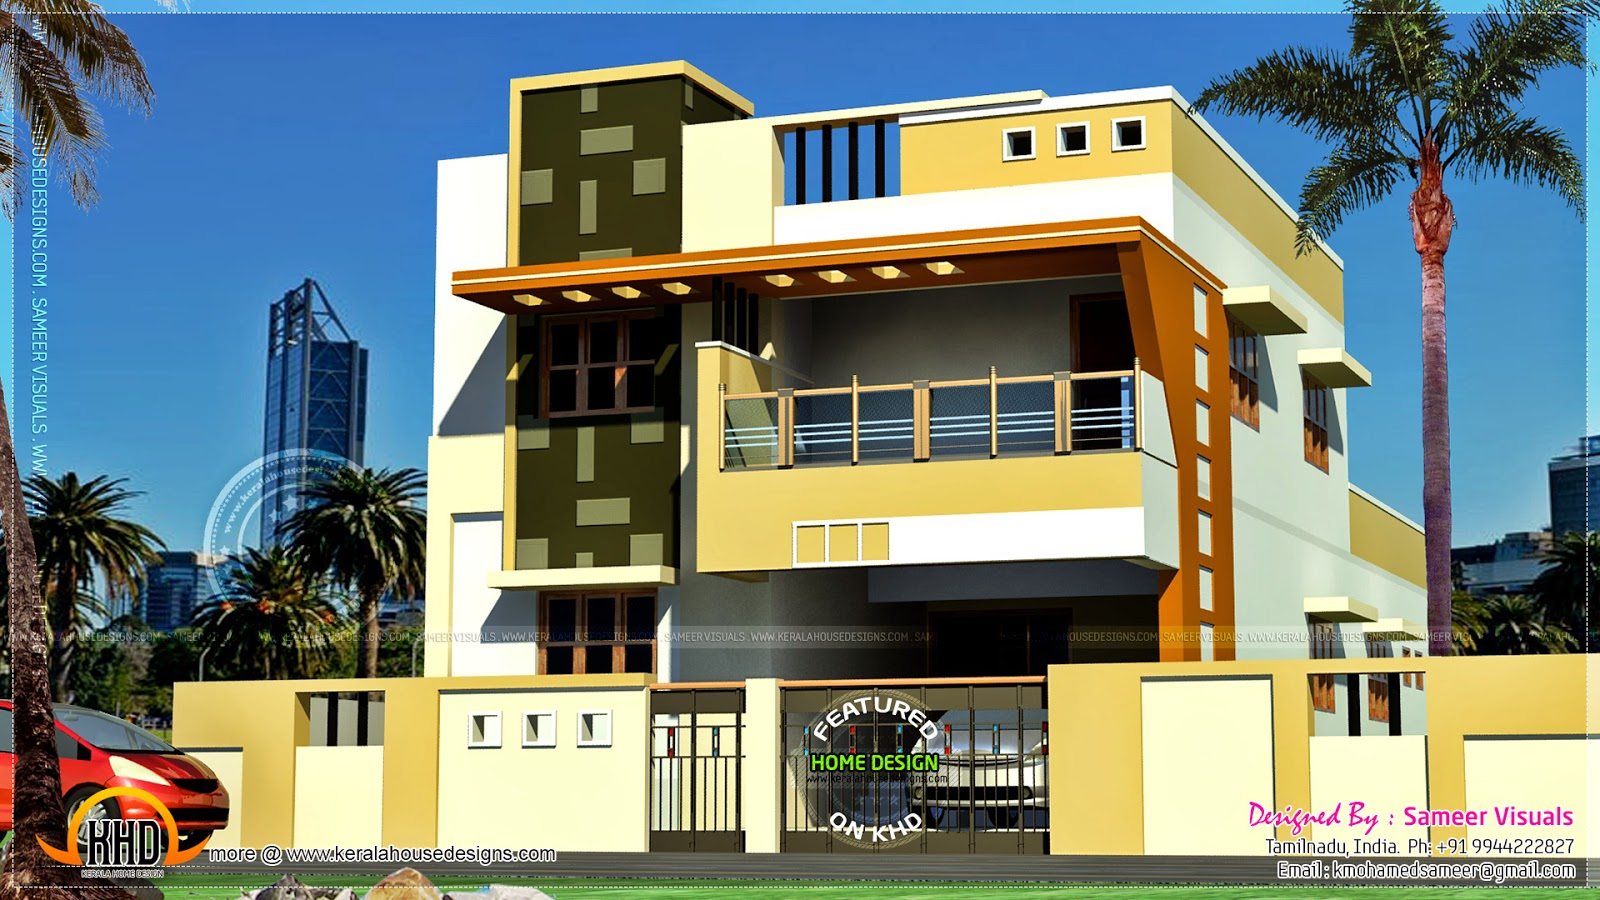 Modern south indian house design kerala home design and for Modern indian house plans